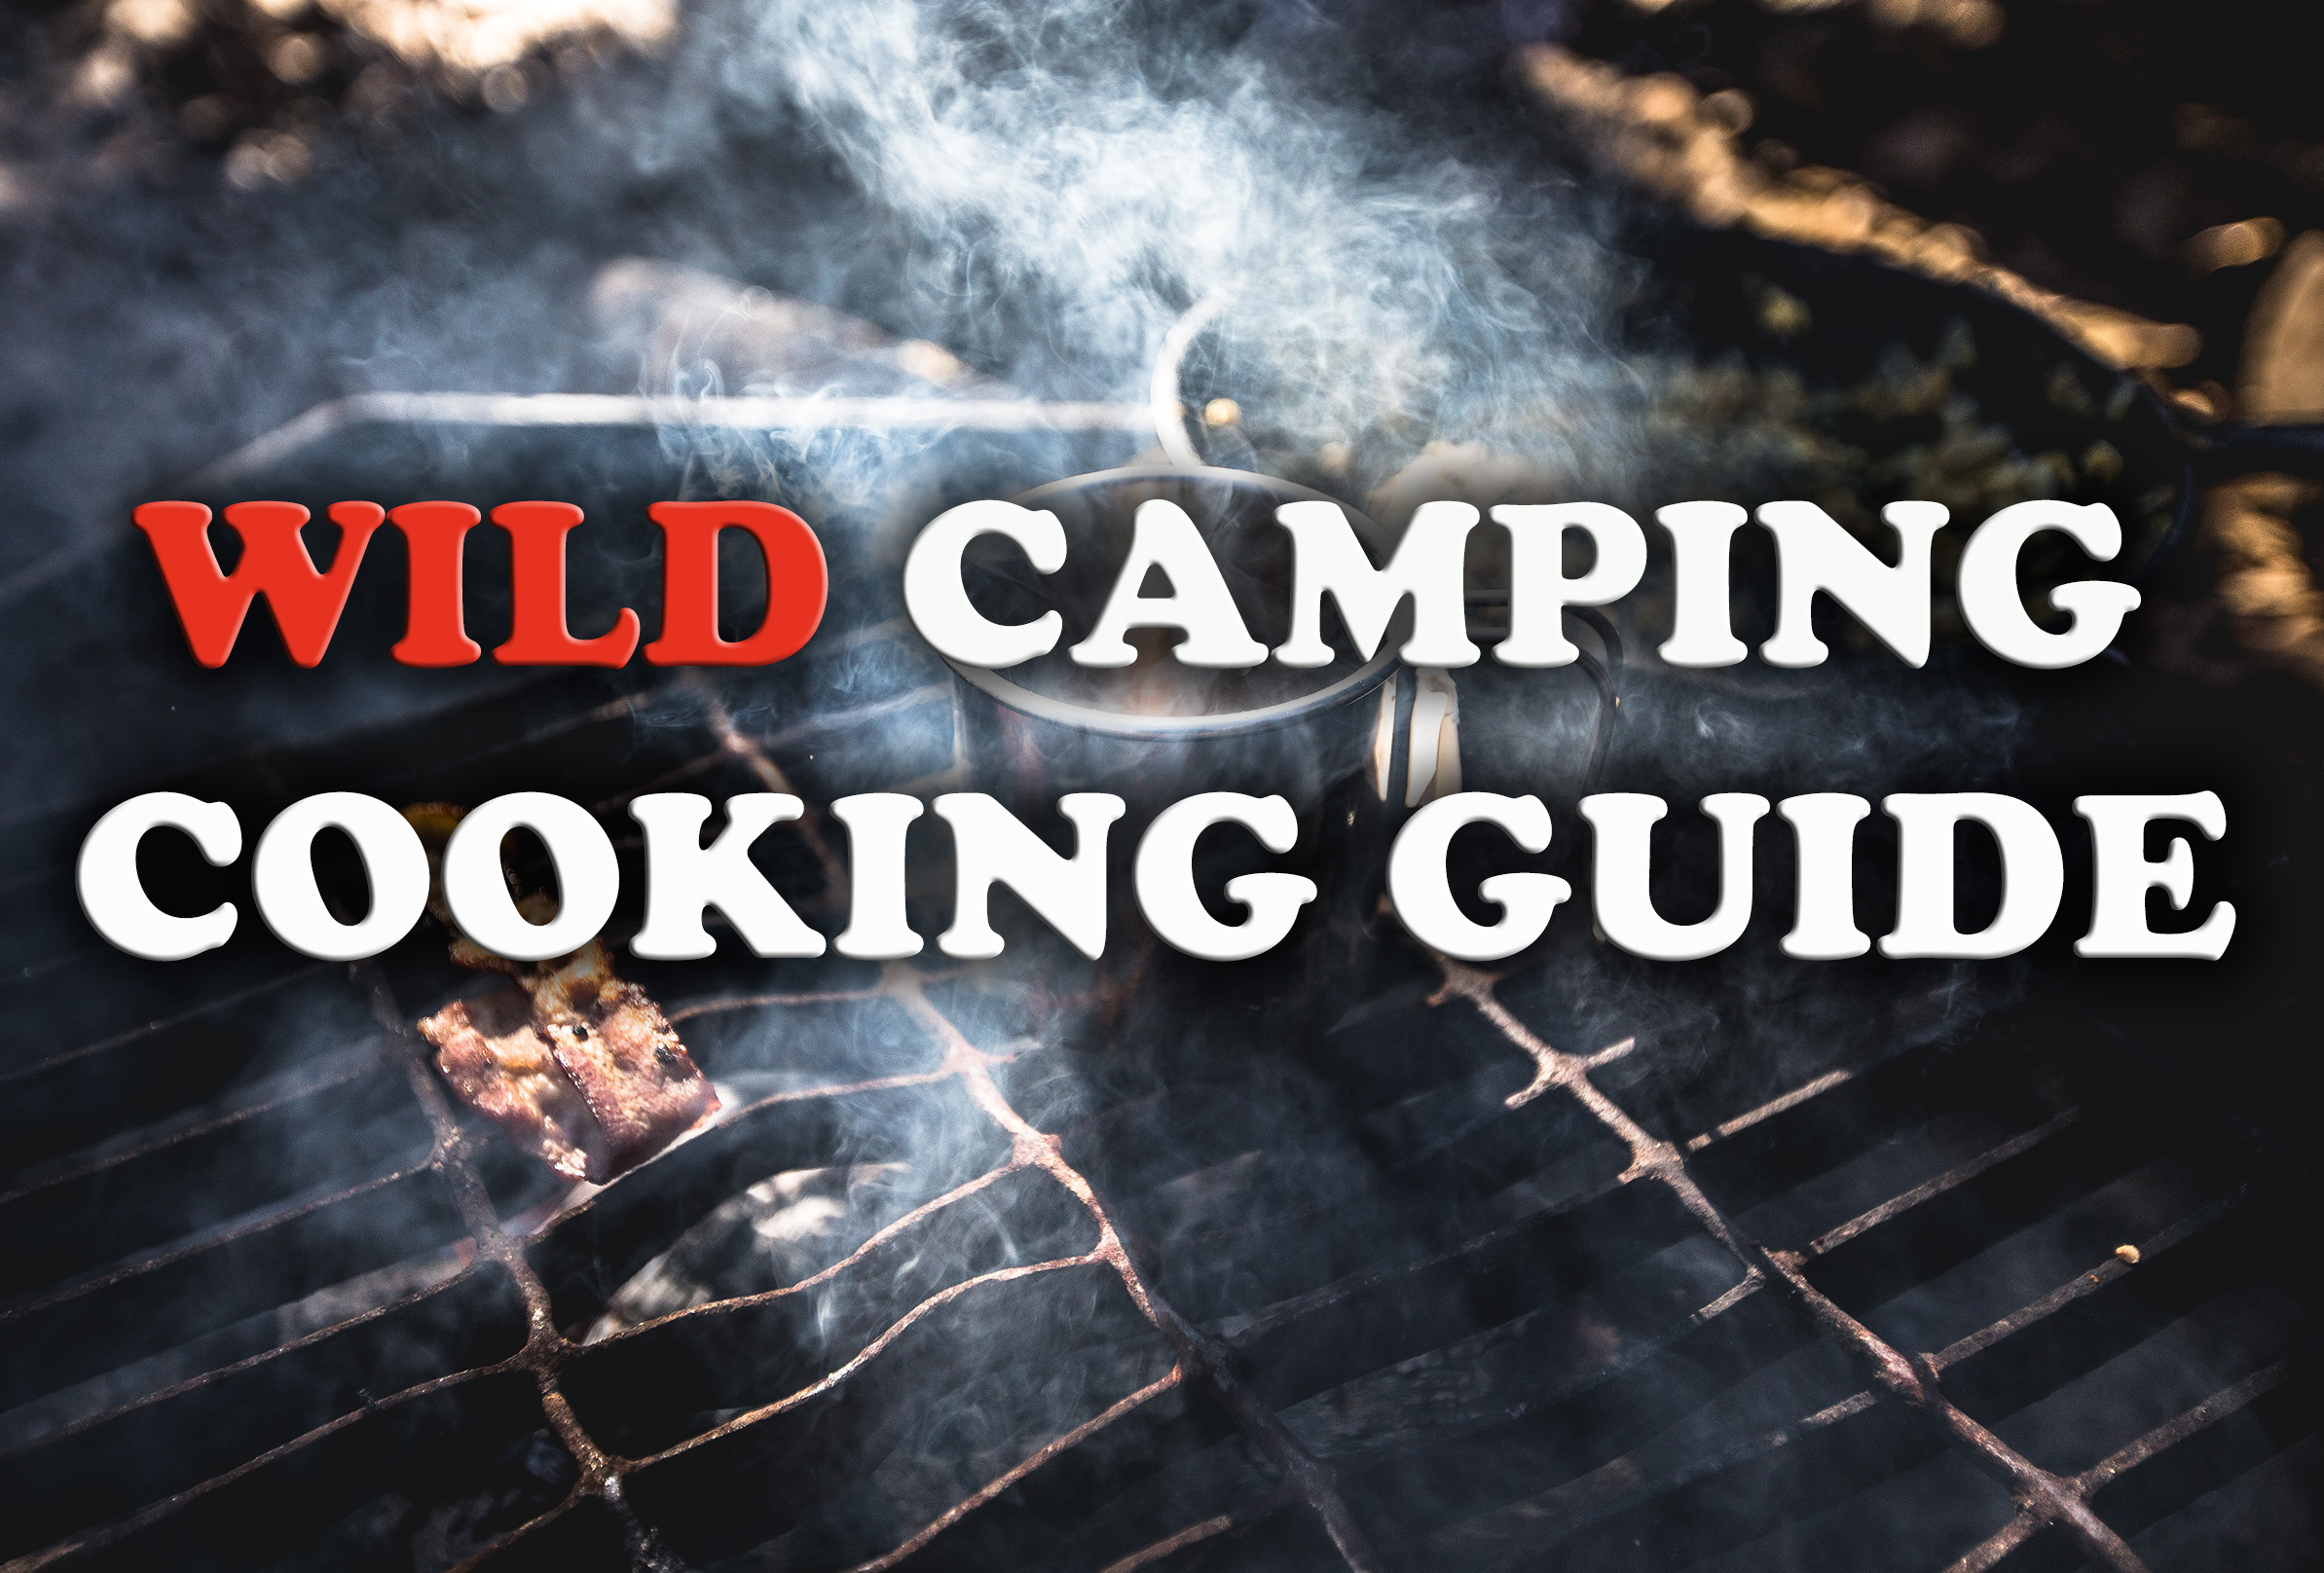 Wild camping cooking